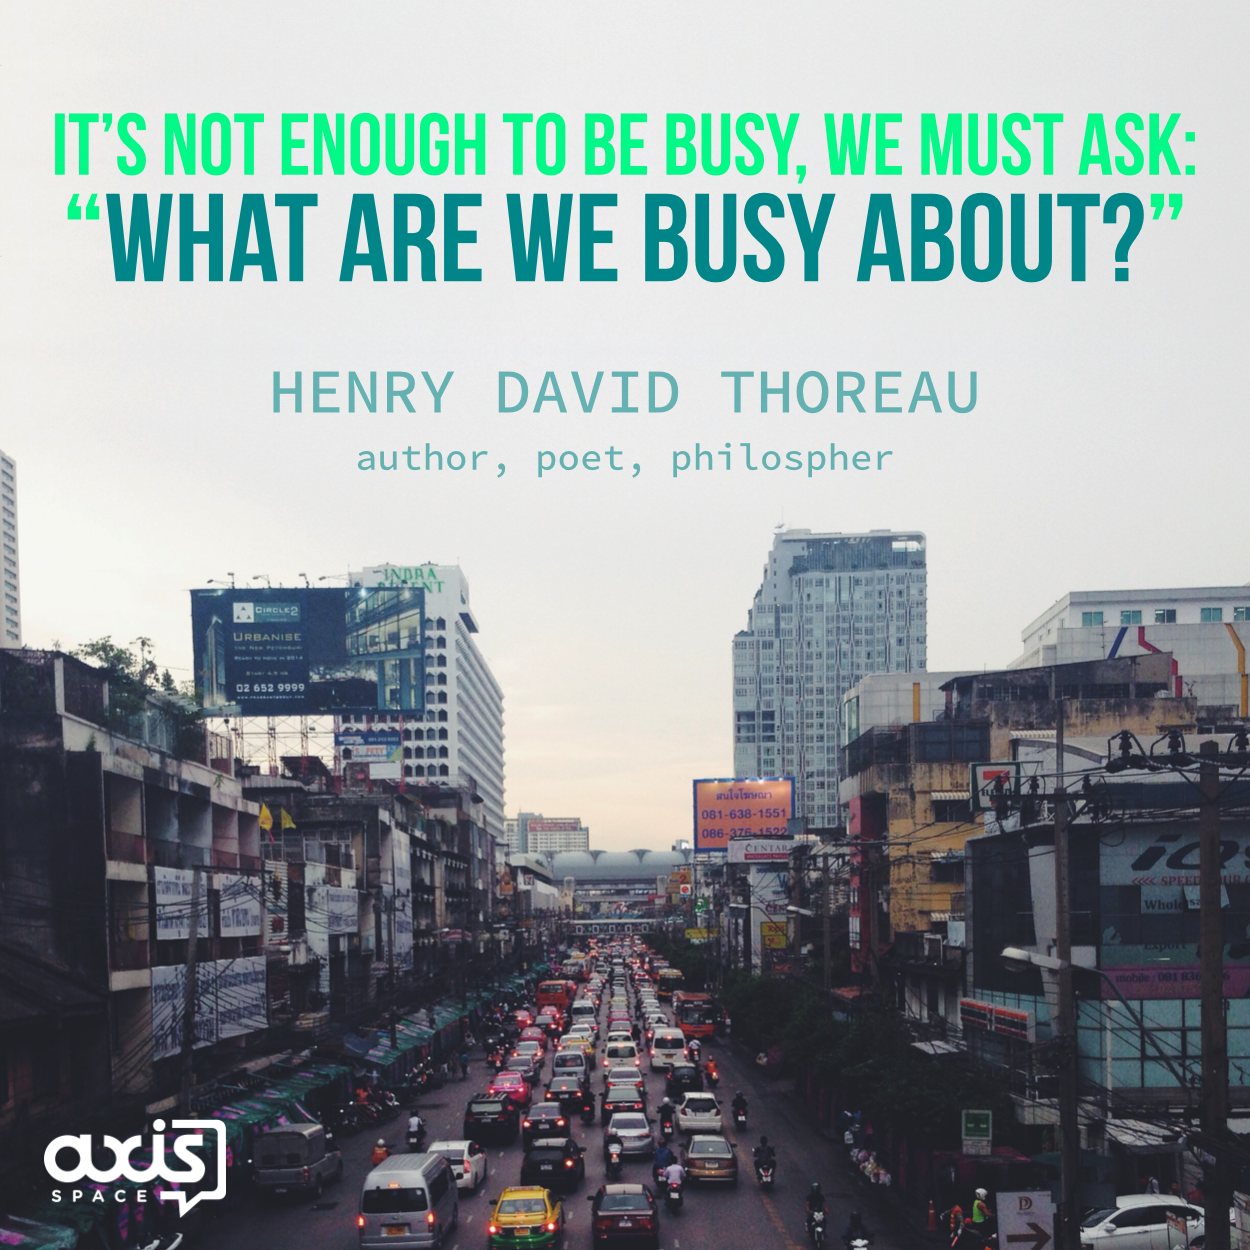 axis-space-office-quotes-henry-david-thoreau